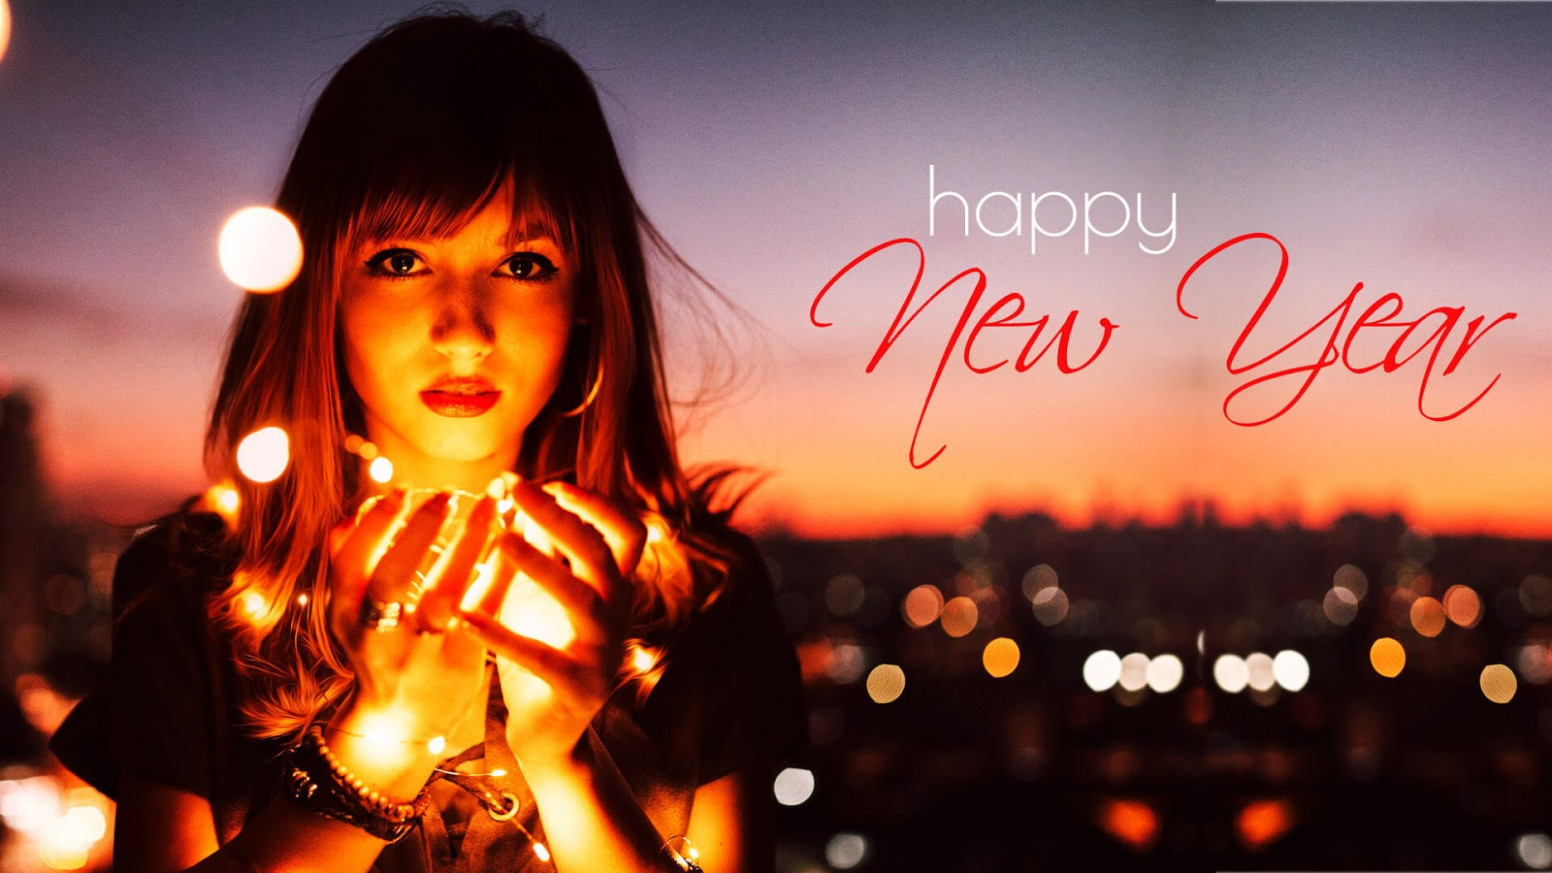 Happy New Year 2018 Wallpapers HD Download Free 1080p ...